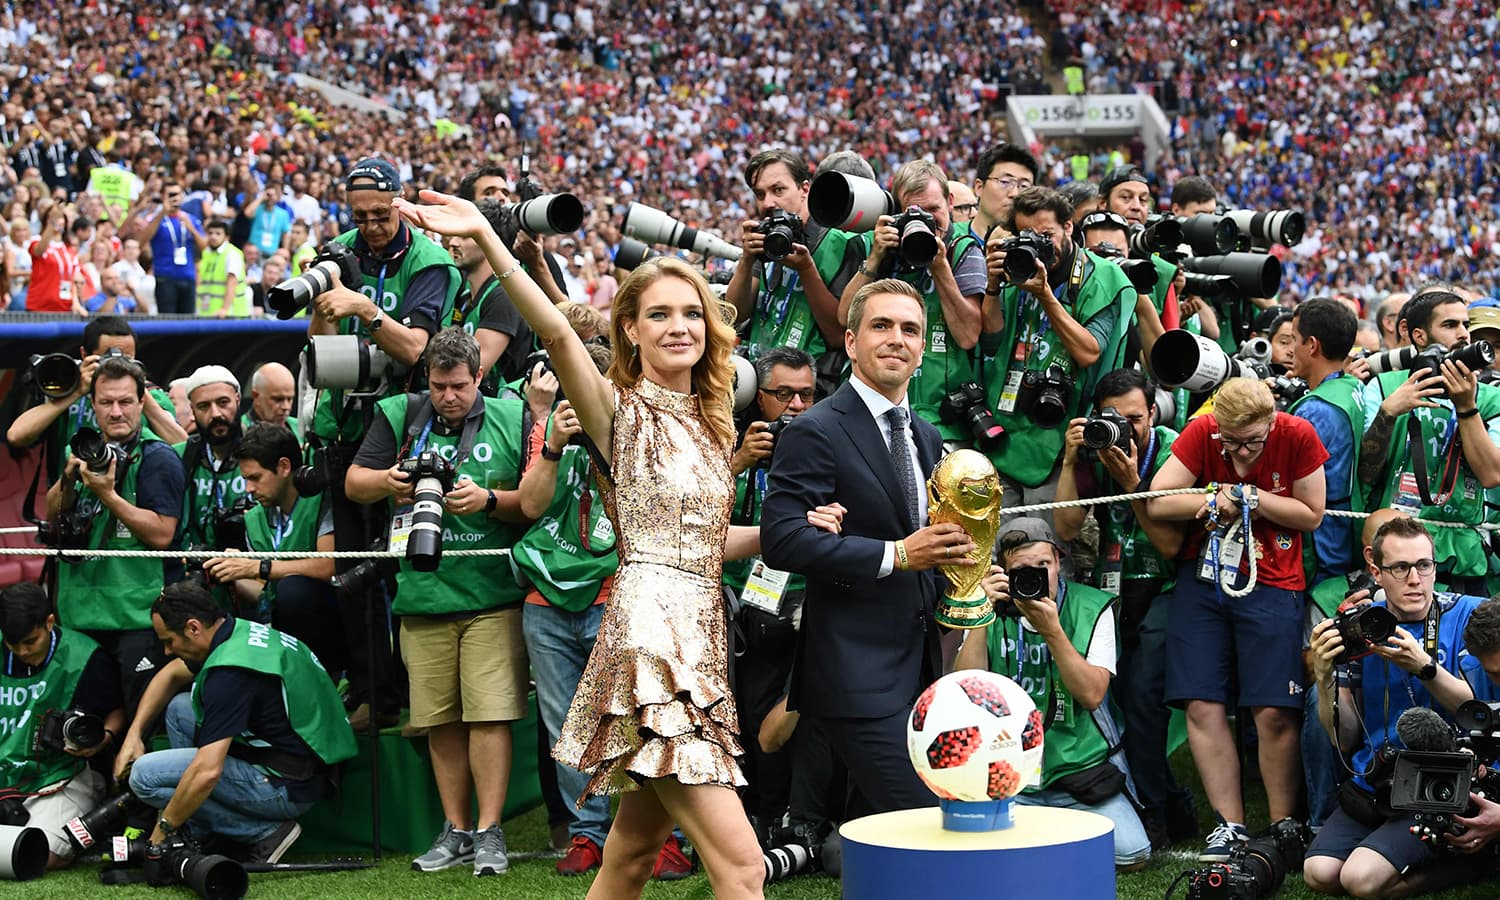 Germany's former captain Philipp Lahm (R) and Russian model Natalia Vodianova pose with the World Cup trophy during the closing ceremony of the Russia 2018 World Cup at the Luzhniki Stadium in Moscow.  — AFP